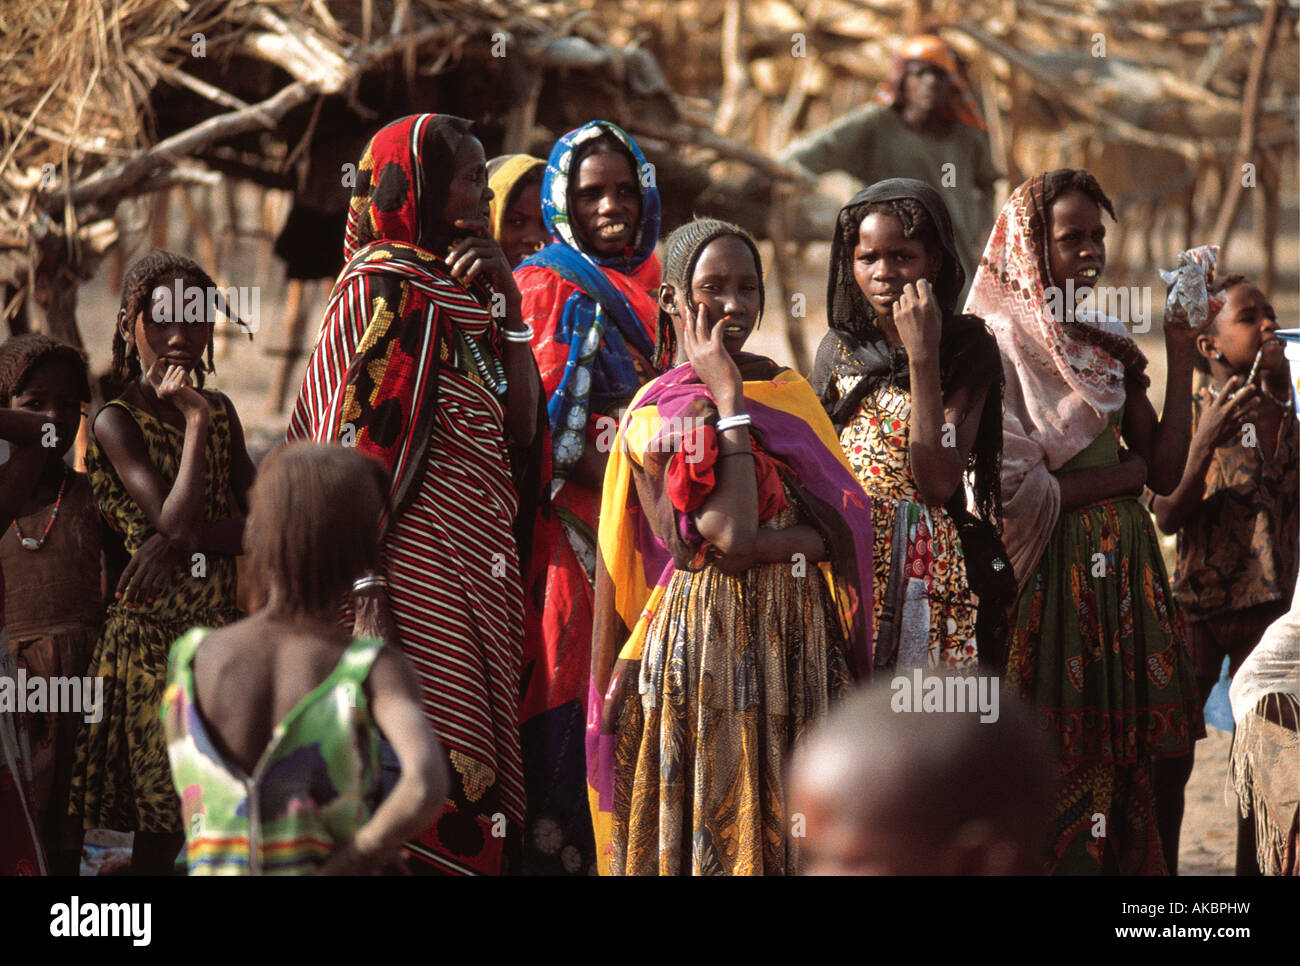 A group of about twelve women and girls chatting at the side of Bol market Lake Chad Chad Africa - Stock Image